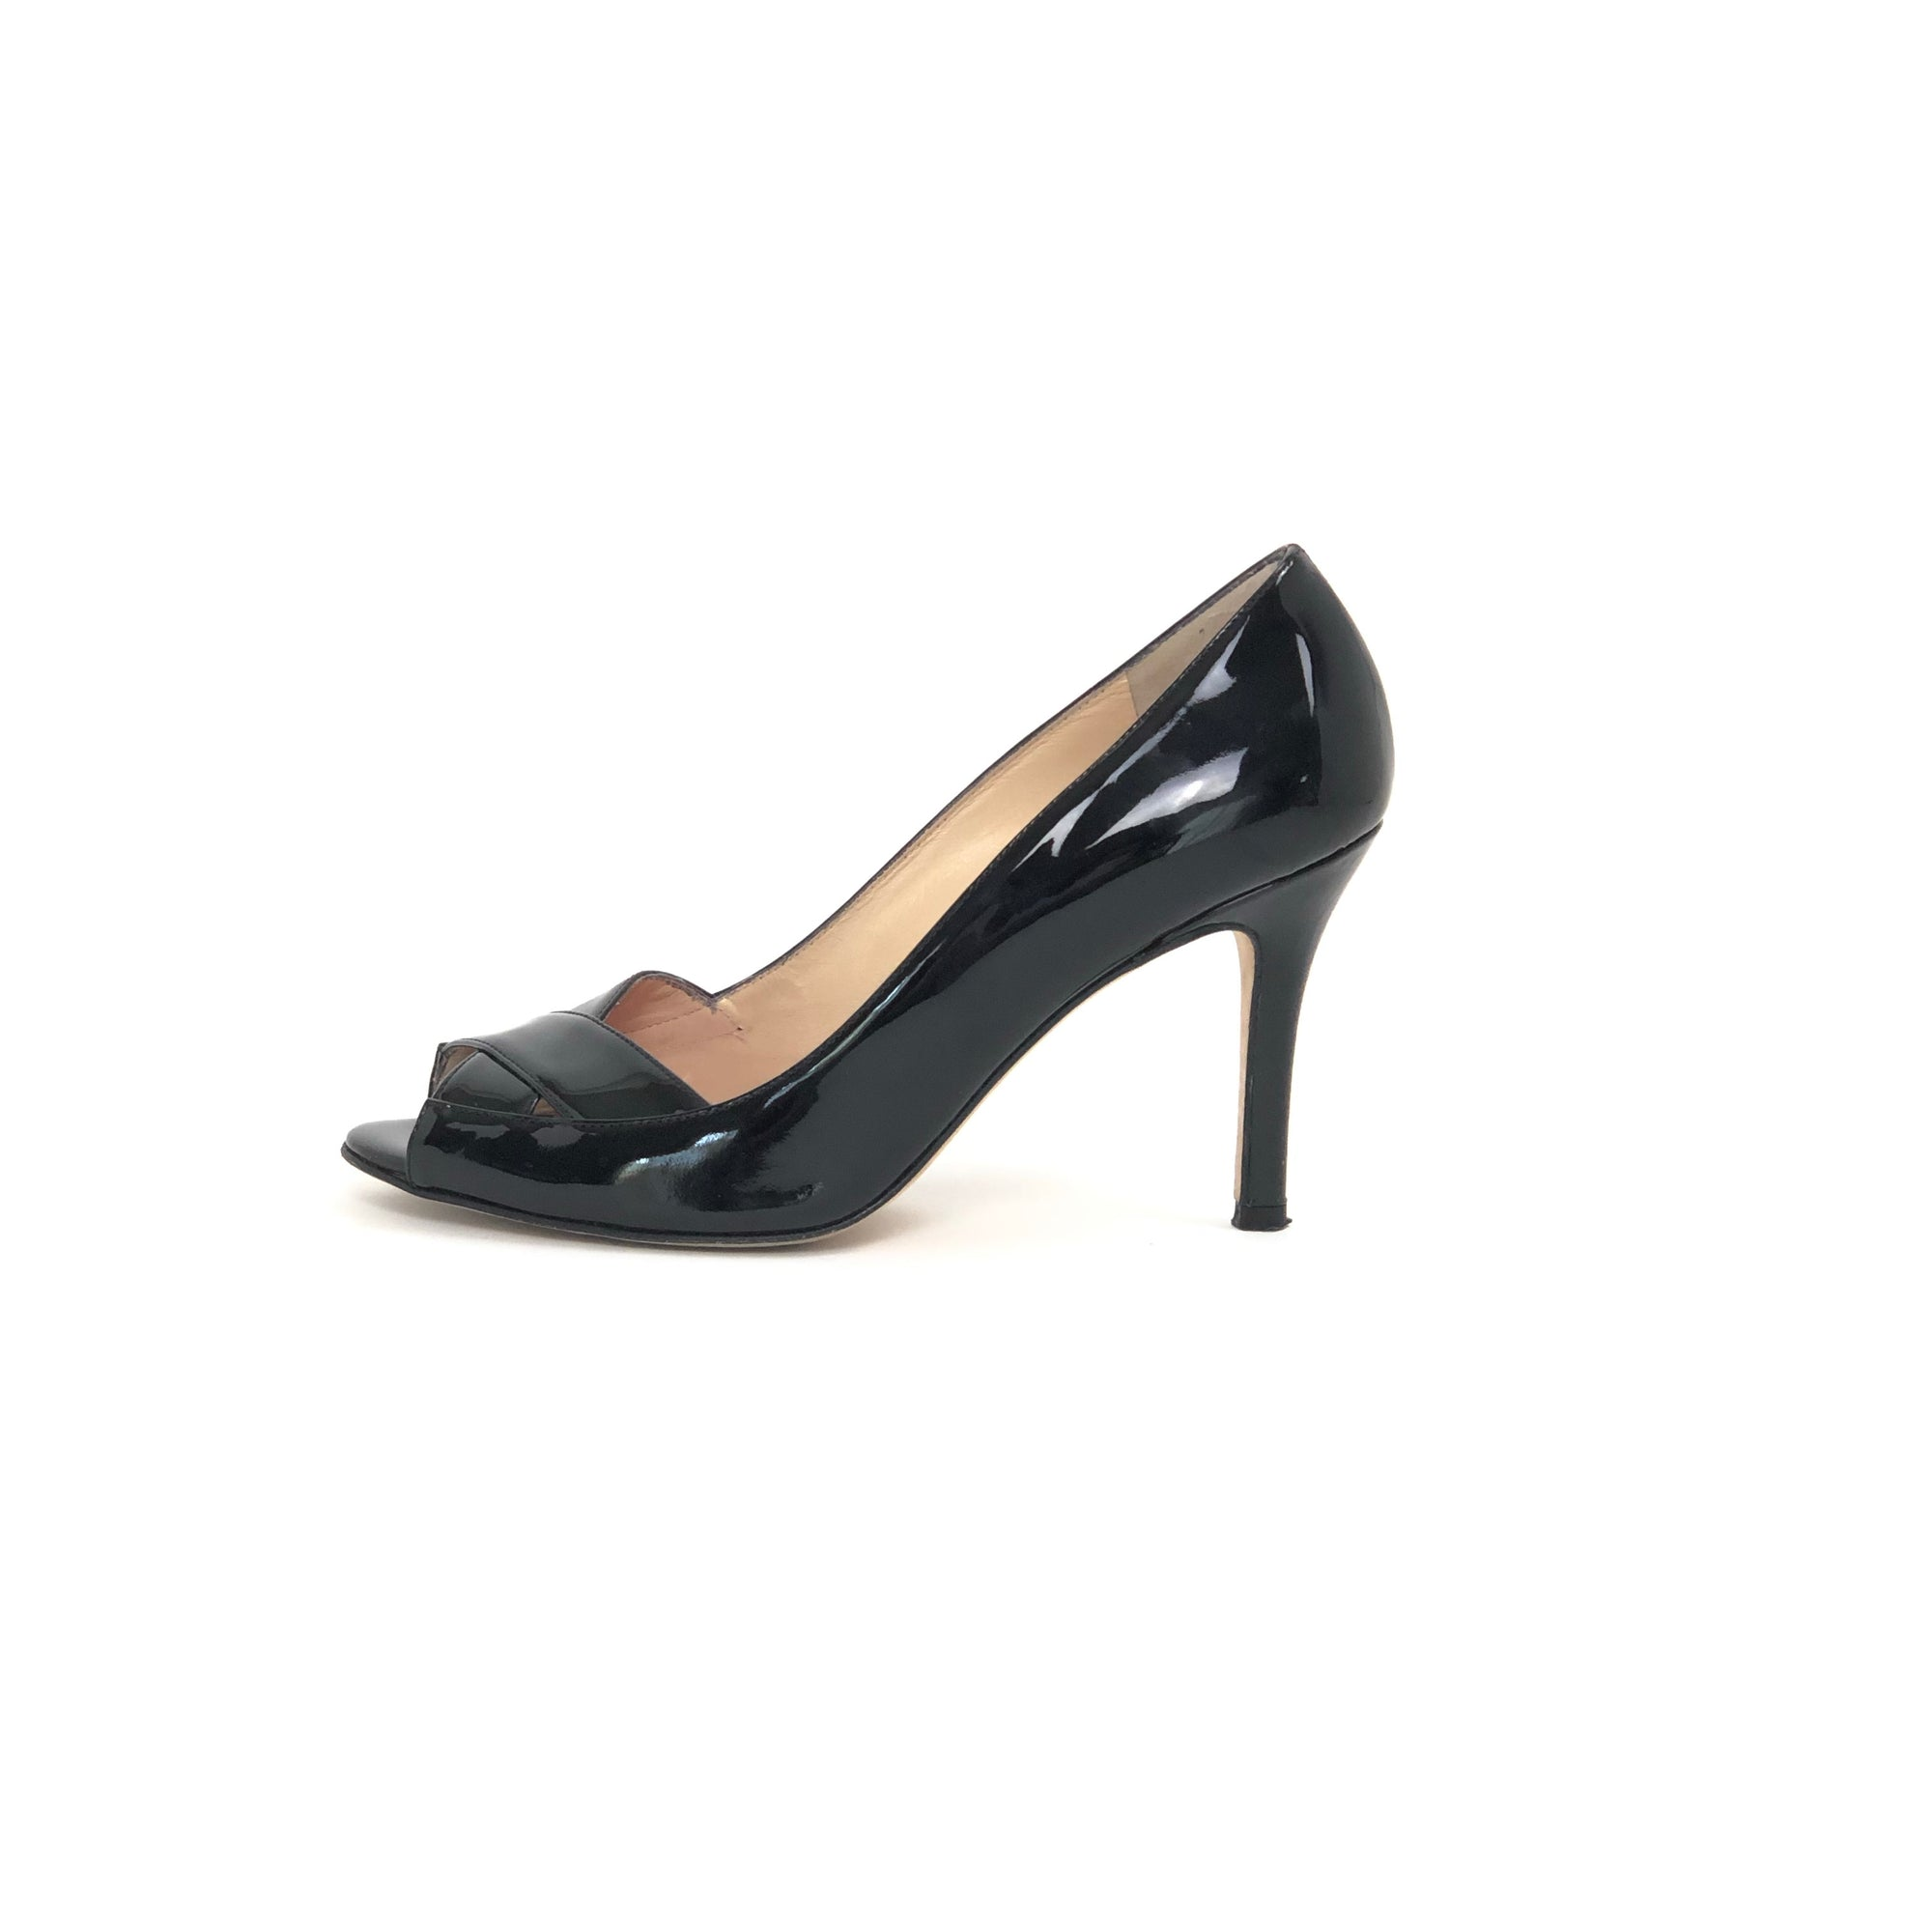 Kate Spade Gwennie Peep Toe Patent Pump Black, Size 7